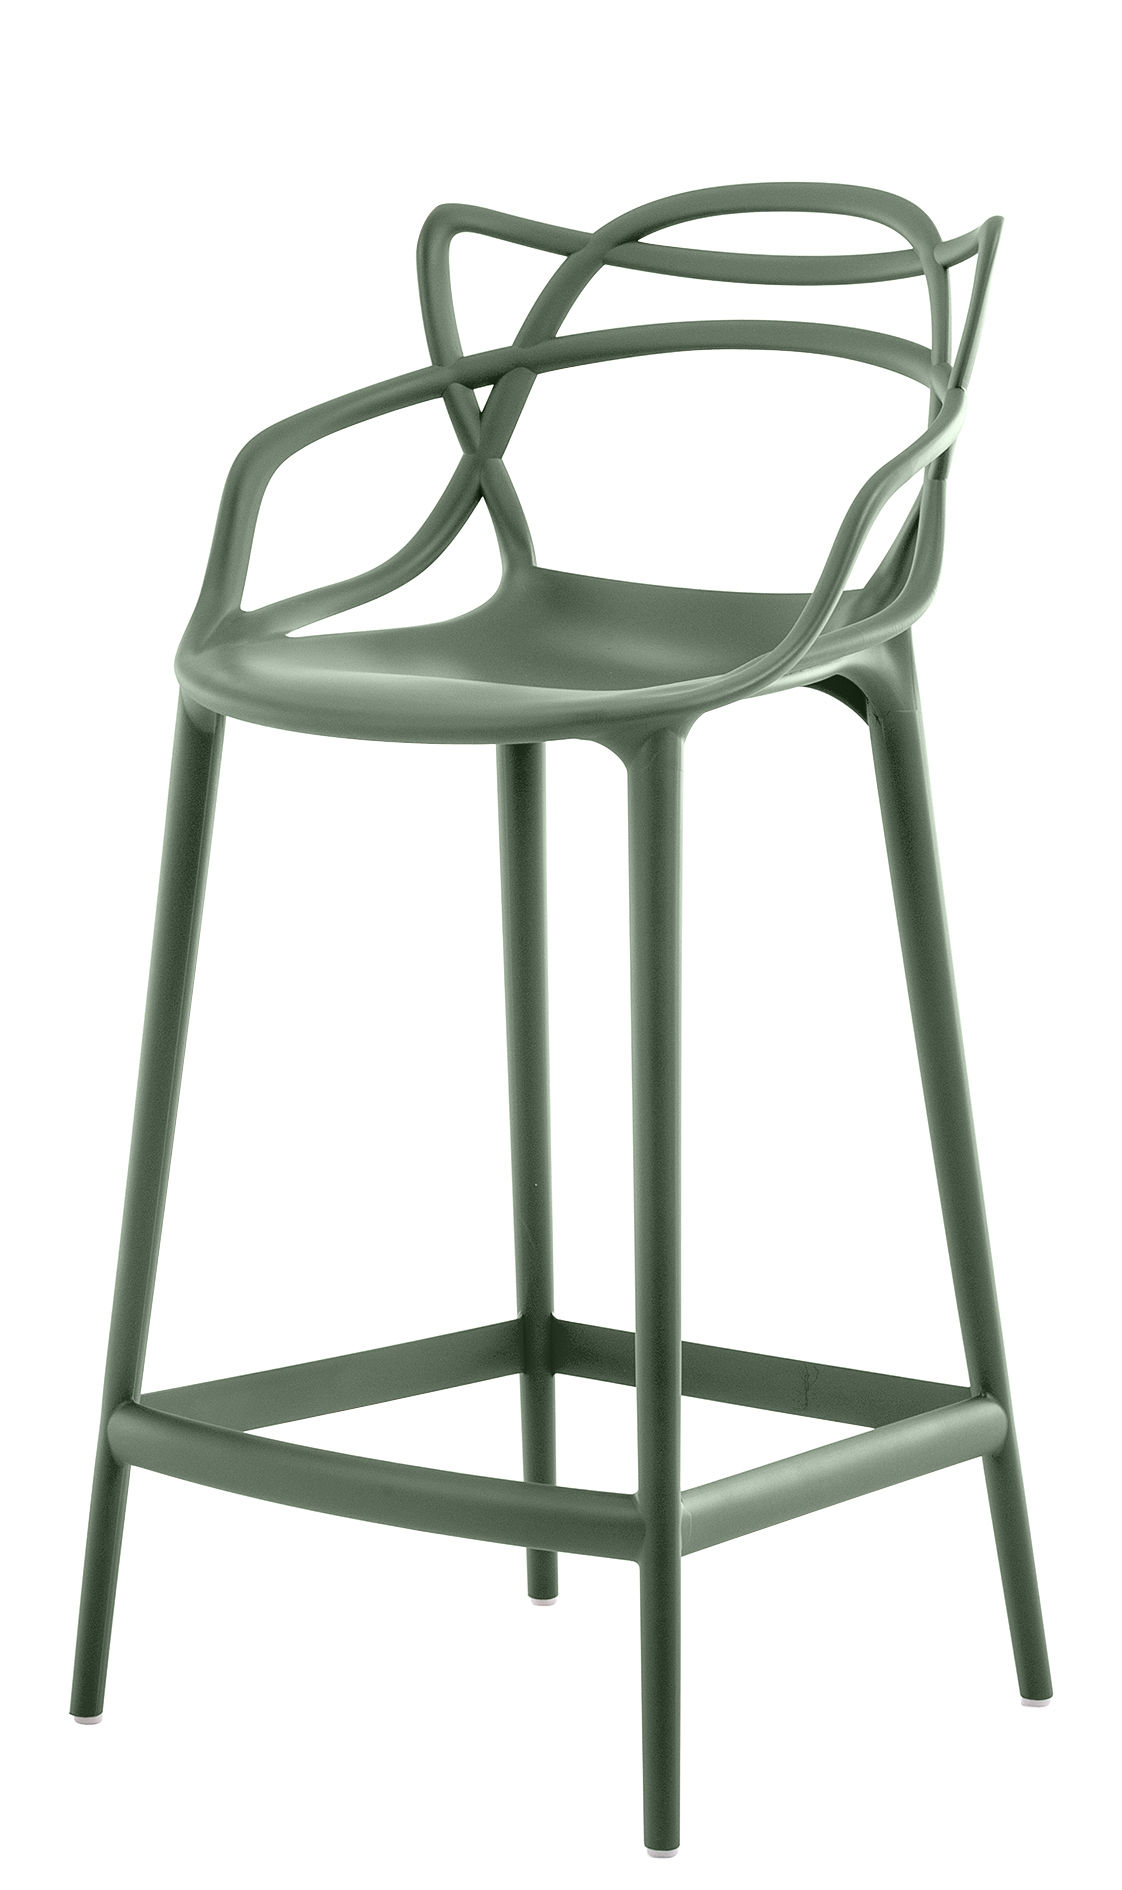 tabouret masters kartell h 65 cm vert sauge made in. Black Bedroom Furniture Sets. Home Design Ideas